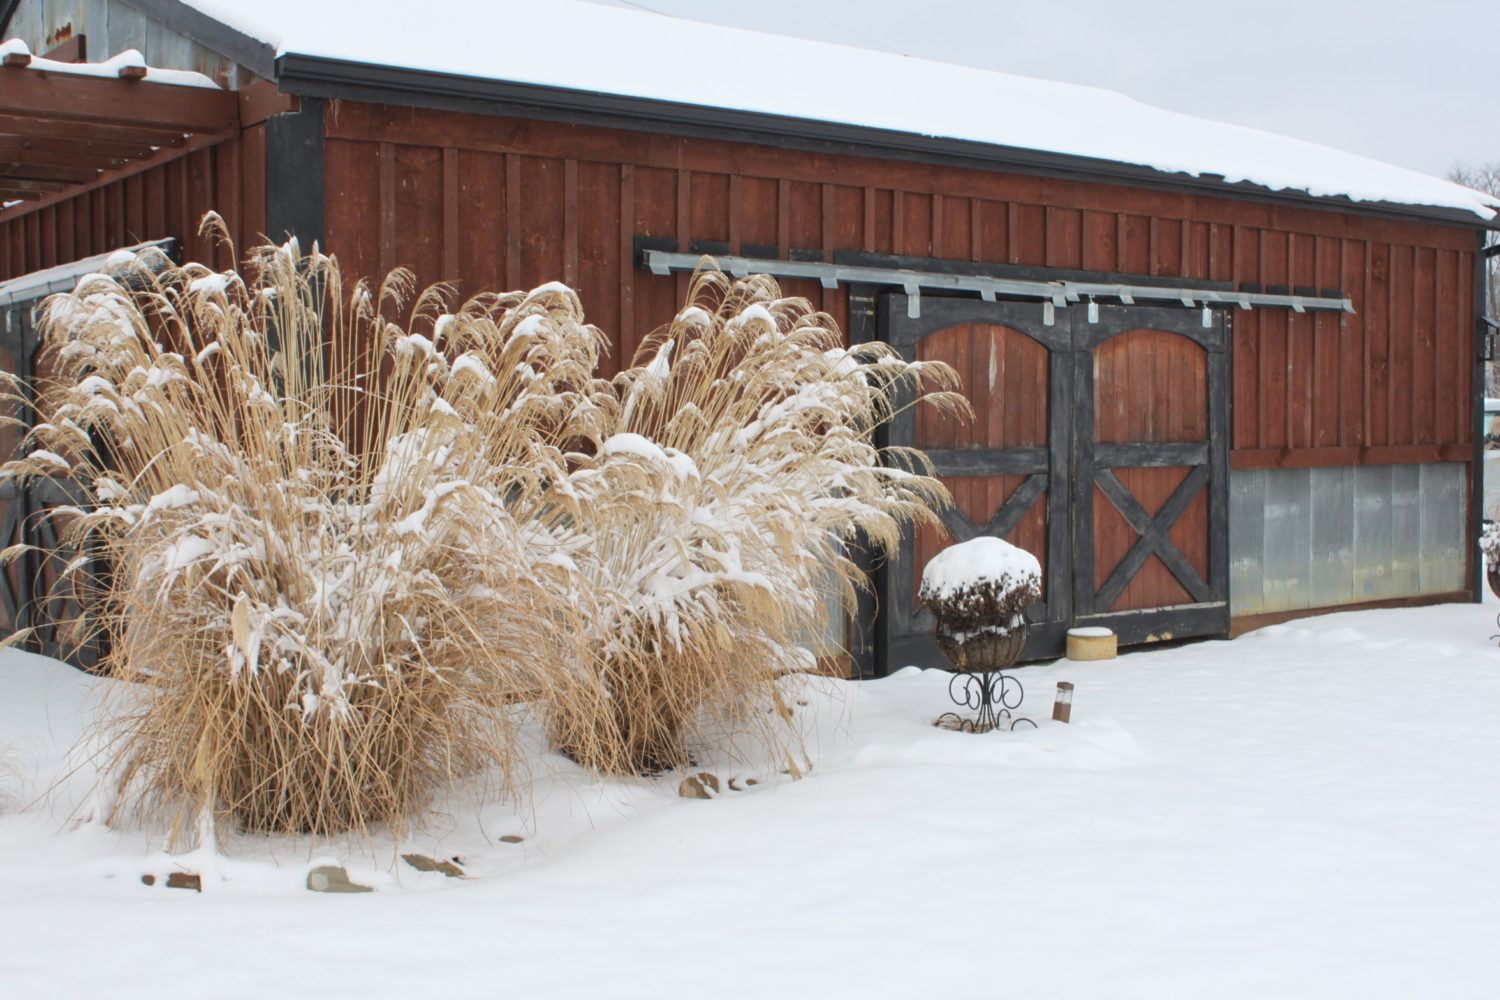 Winter Photos From The Farm – And The Snow Falls!